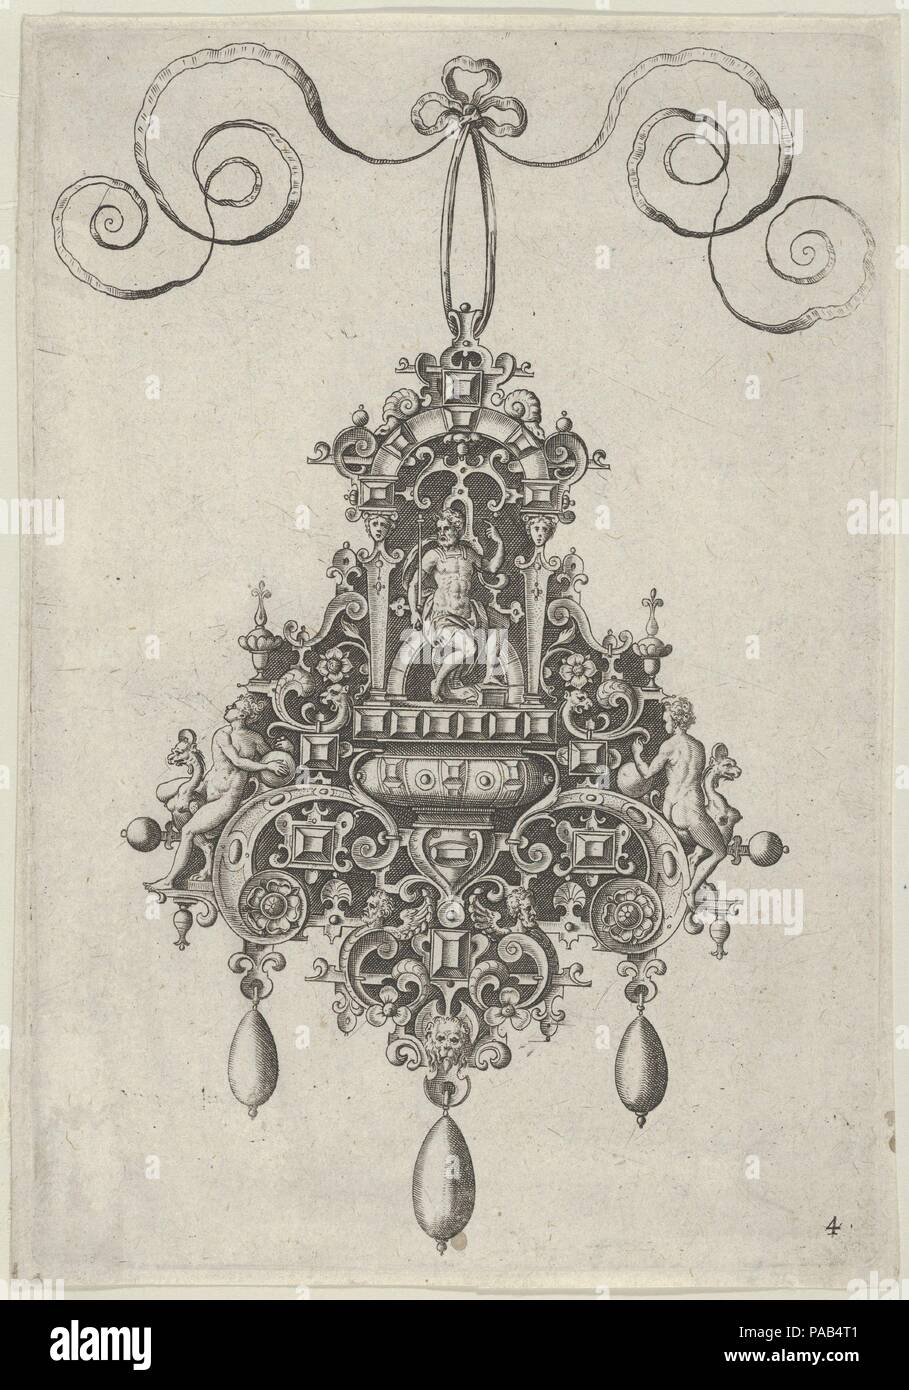 Pendant Design with Mars Seated Beneath an Arch. Artist: Jan Collaert I (Netherlandish, Antwerp ca. 1530-1581 Antwerp). Dimensions: Sheet: 6 15/16 × 4 13/16 in. (17.7 × 12.2 cm). Series/Portfolio: Designs for Pendants I. Date: after 1581.  Vertical panel with a pendant design at center, with Mars seated under an arch against a strapwork background at center.  At the sides of the ornament, female figures hold onto strapwork elements, with the one at right seen from behind. Plate 4 from a set of ten plates with pendant designs, with dieties and strapwork backgrounds. The first edition of the ser - Stock Image